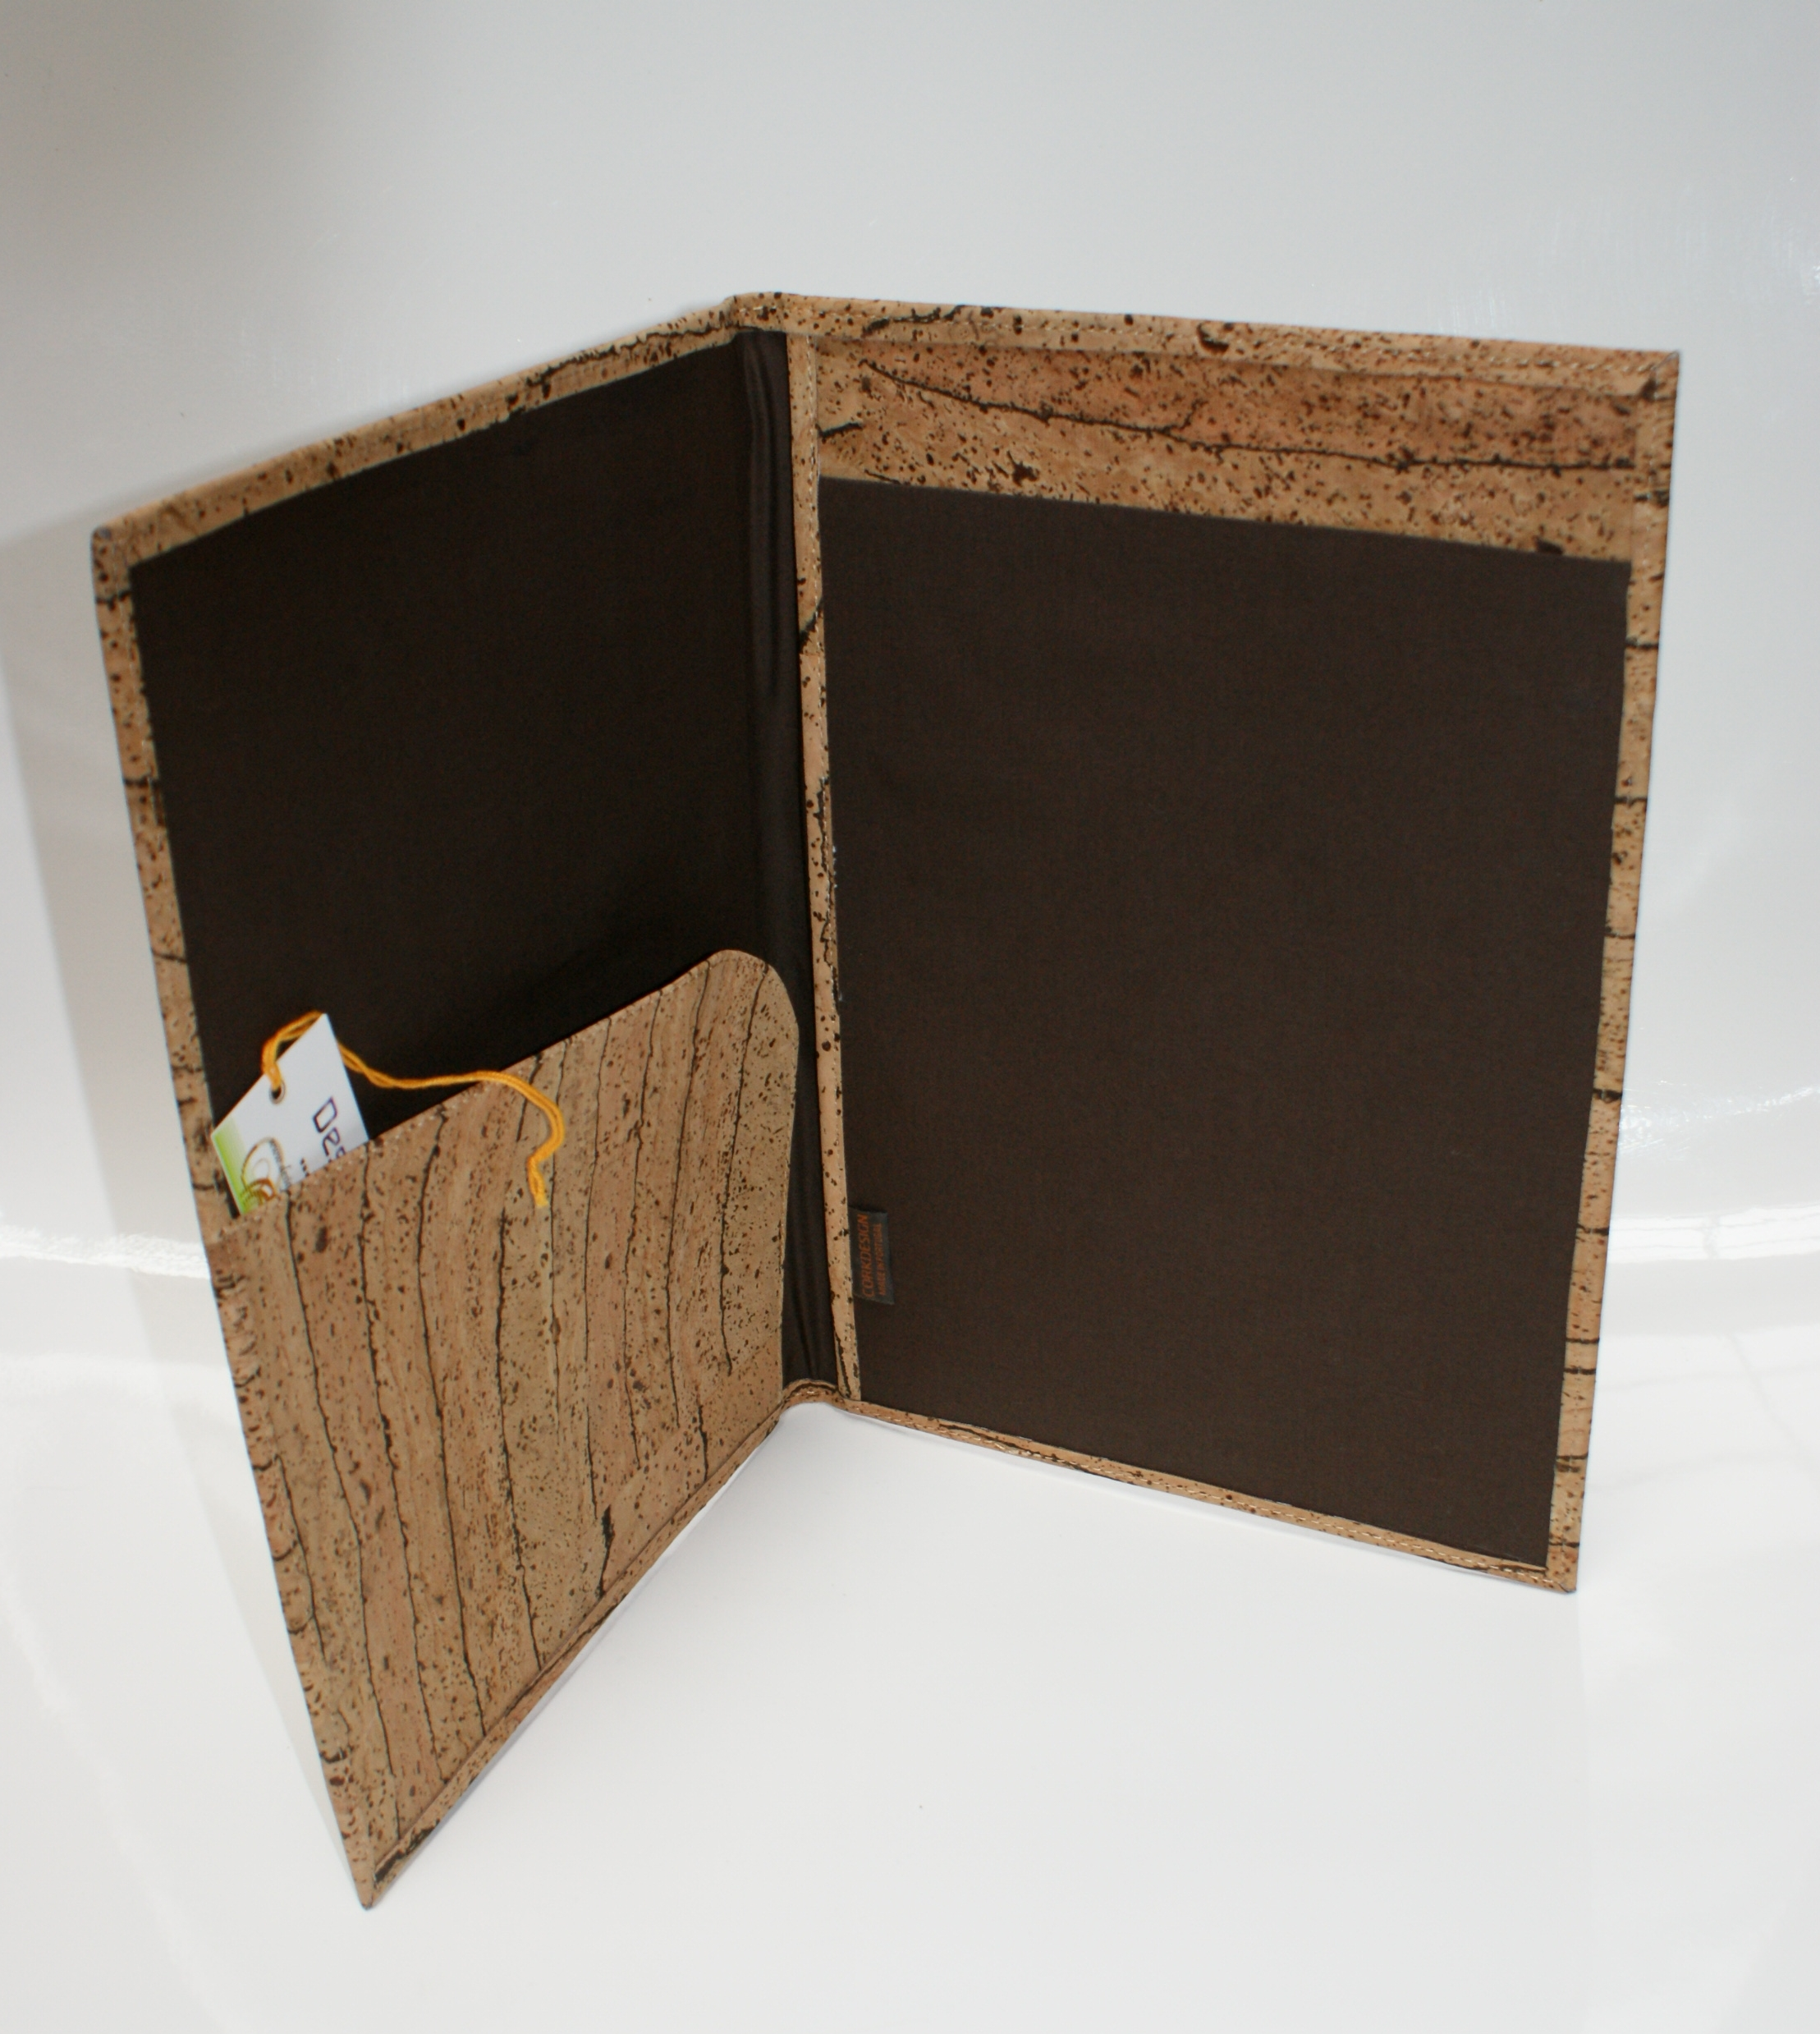 Cork Document Holder DIN A Rustic Pattern Design Textinova - Porte document a4